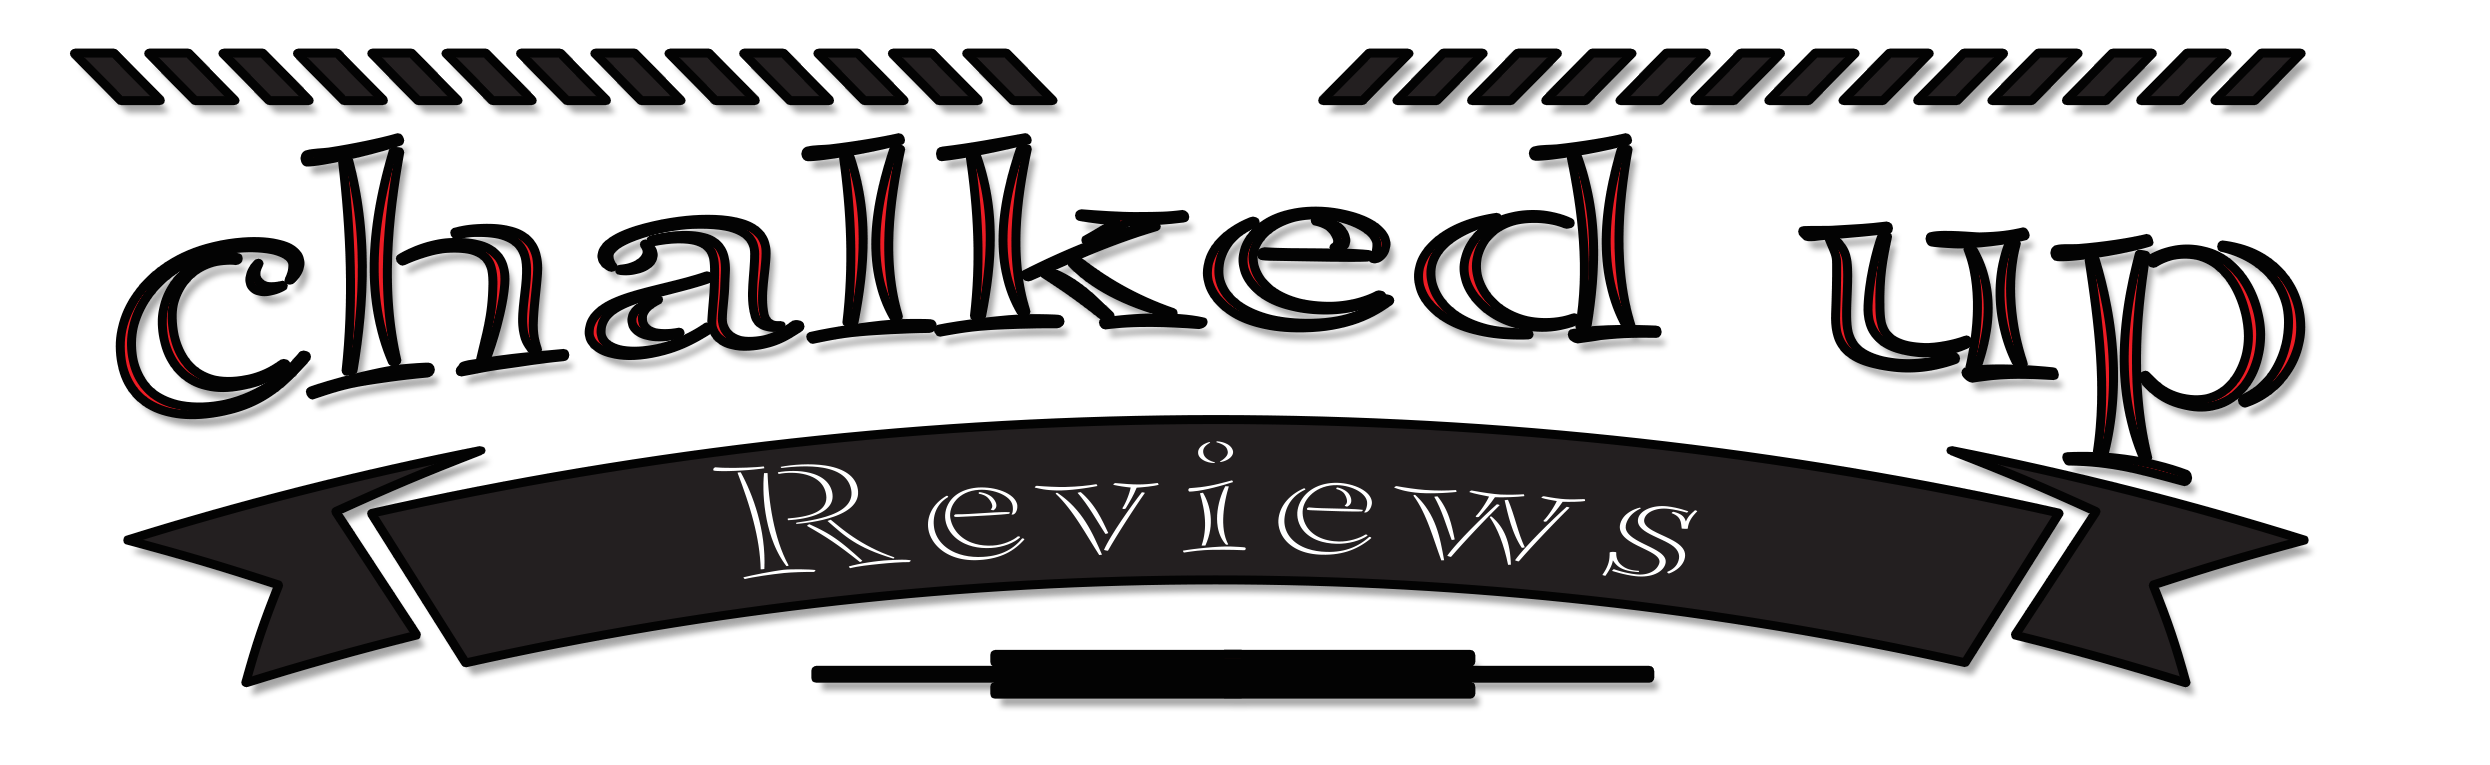 Chalked Up Reviews